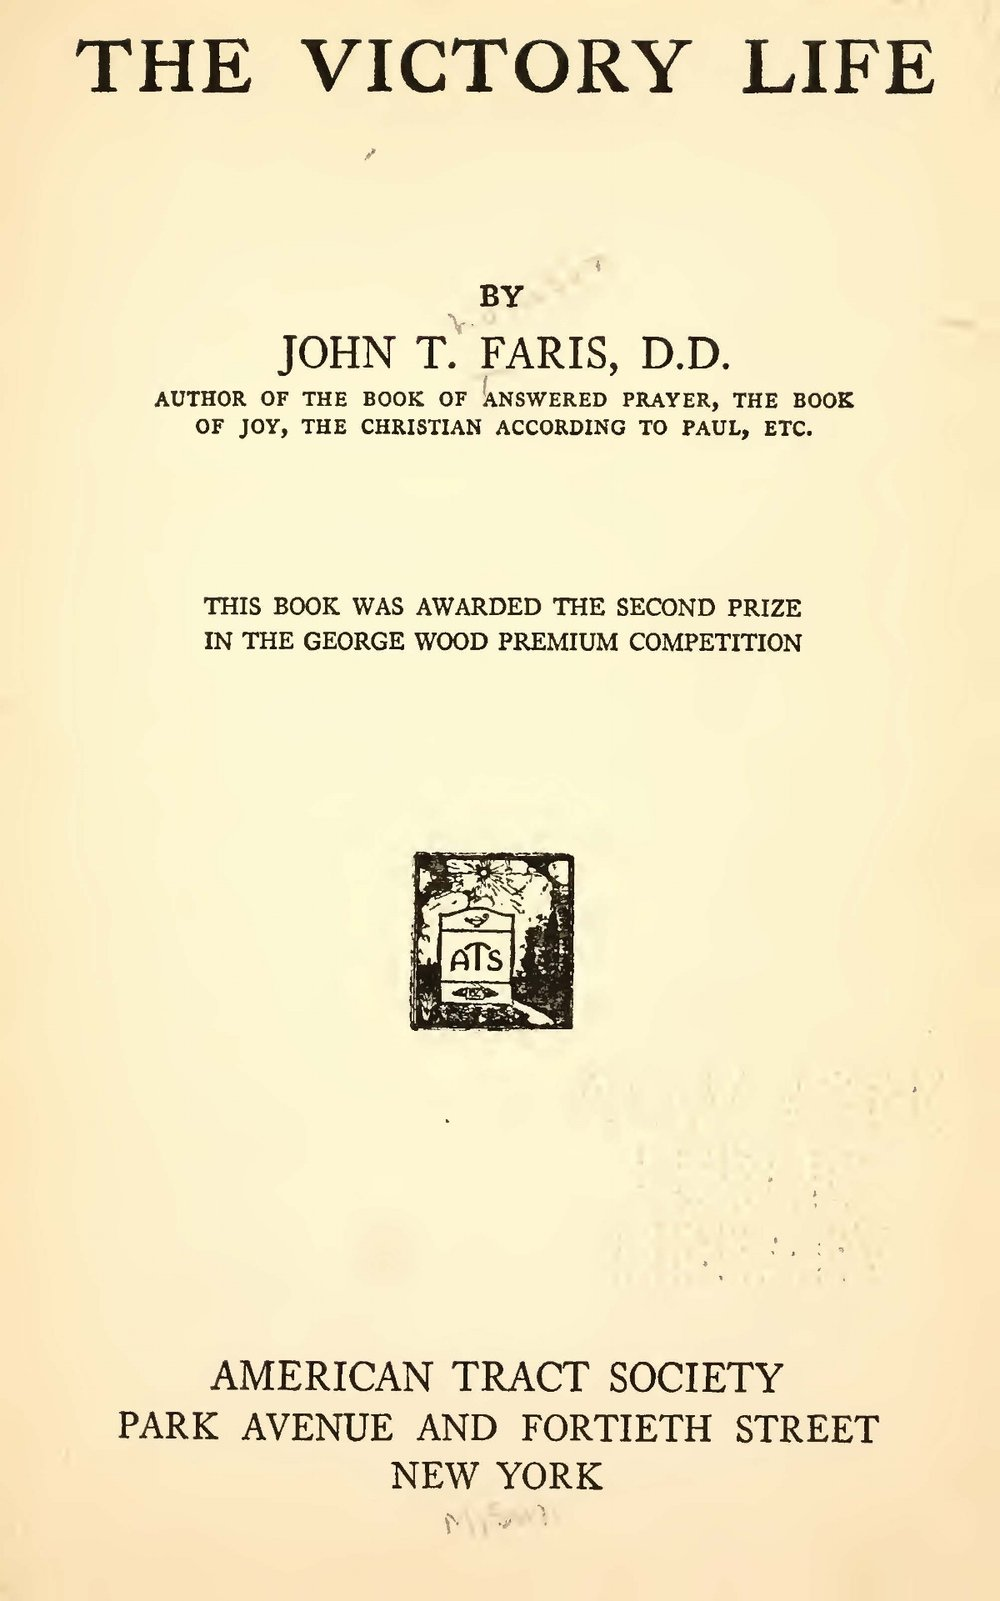 Faris, John Thomson, The Victory Life Title Page.jpg